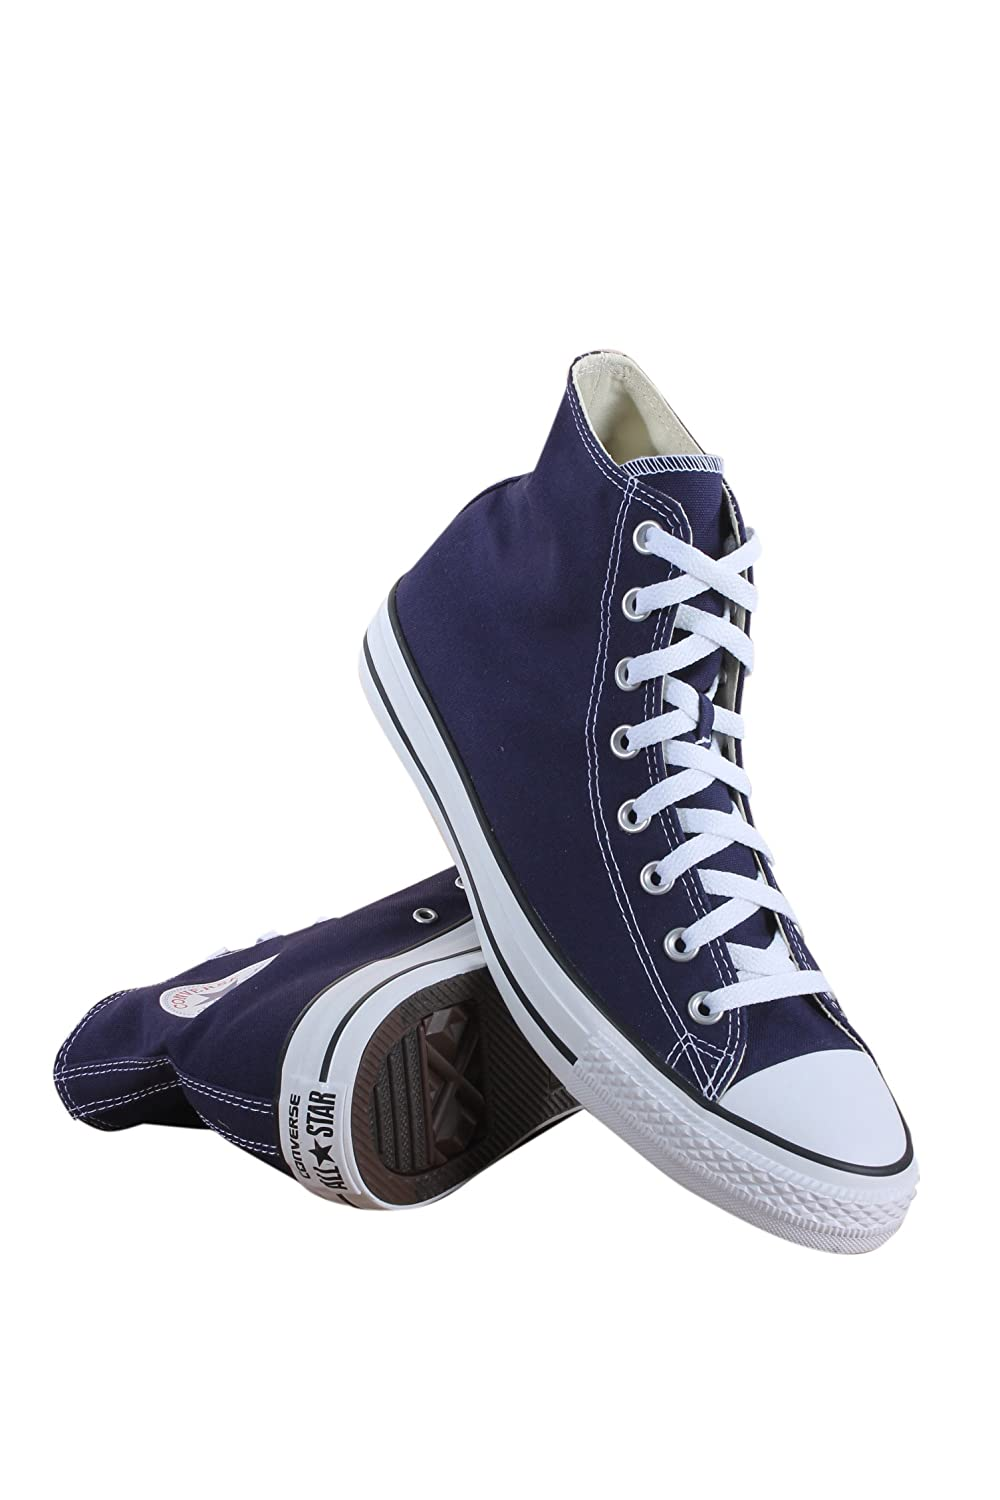 Converse Unisex Chuck Taylor All-Star High-Top Casual Sneakers in Classic Style and Color and Durable Canvas Uppers B01N9JGWGQ 37 M EU / 6.5 B(M) US Women / 4.5 D(M) US Men|Midnight Indigo